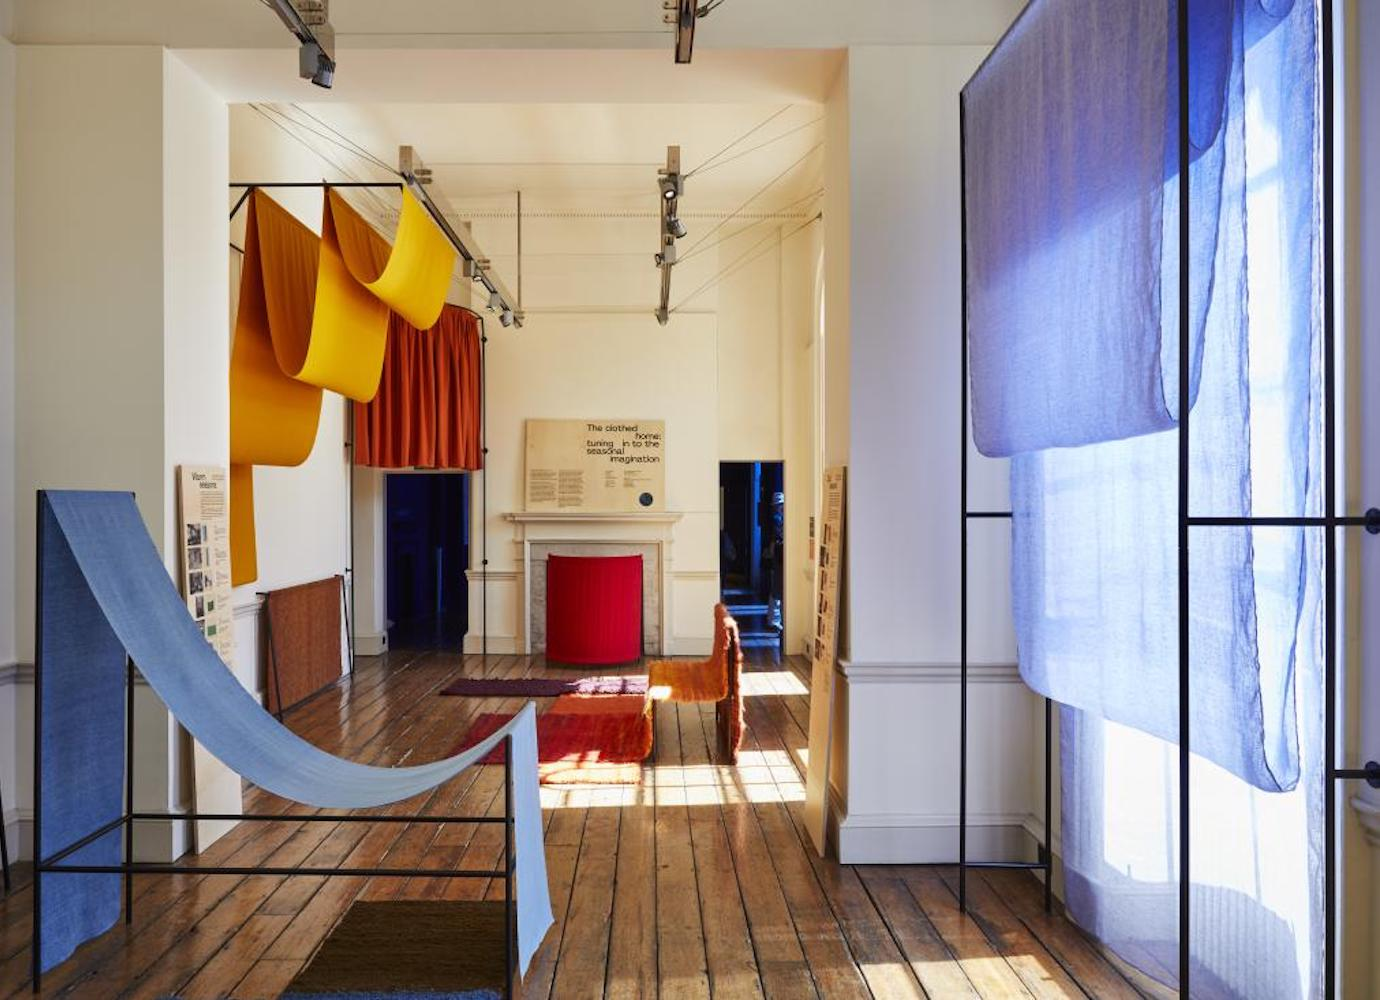 At London's Design Biennale, Polish artists use carpets and curtains to adapt to climate change